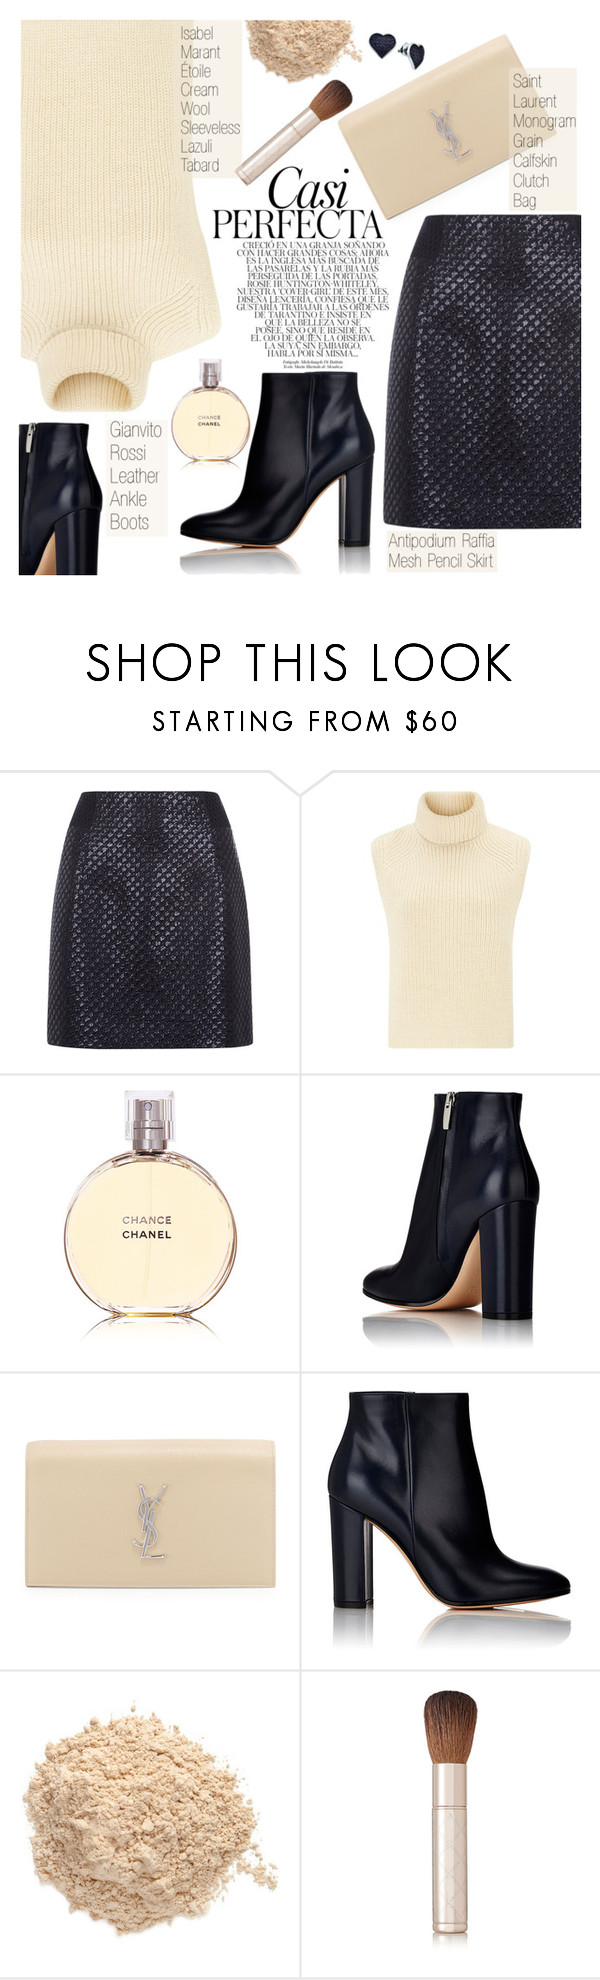 """Girl's Night Out, Beauty Edition"" by pokadoll ❤ liked on Polyvore featuring Antipodium, Étoile Isabel Marant, Chanel, Gianvito Rossi, Whiteley, Yves Saint Laurent, Le Métier de Beauté, By Terry and BillyTheTree"